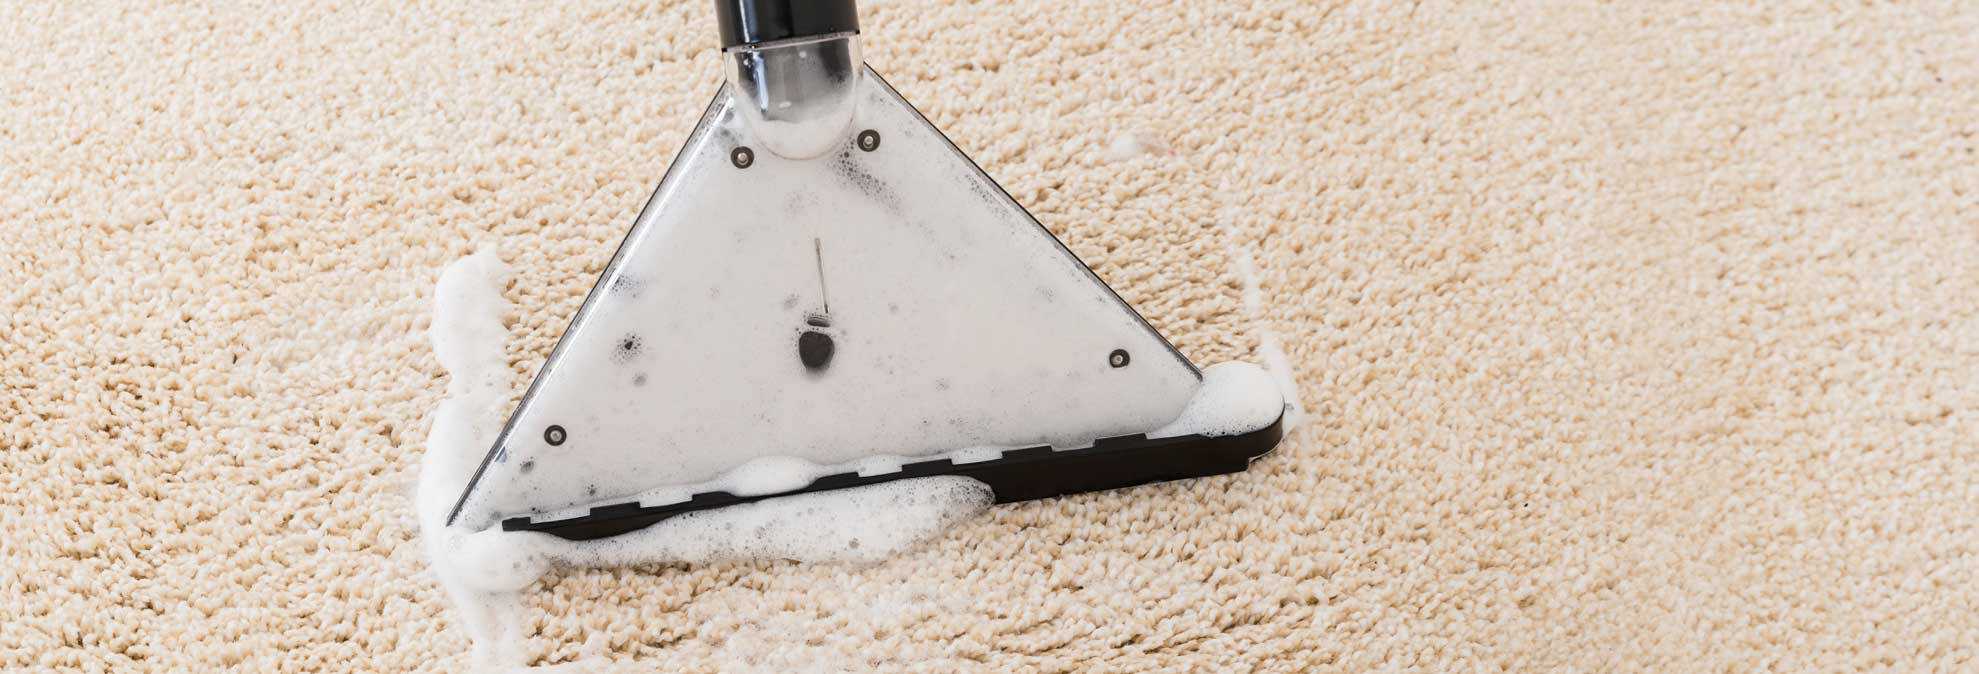 Best Carpet Cleaner Buying Guide Consumer Reports